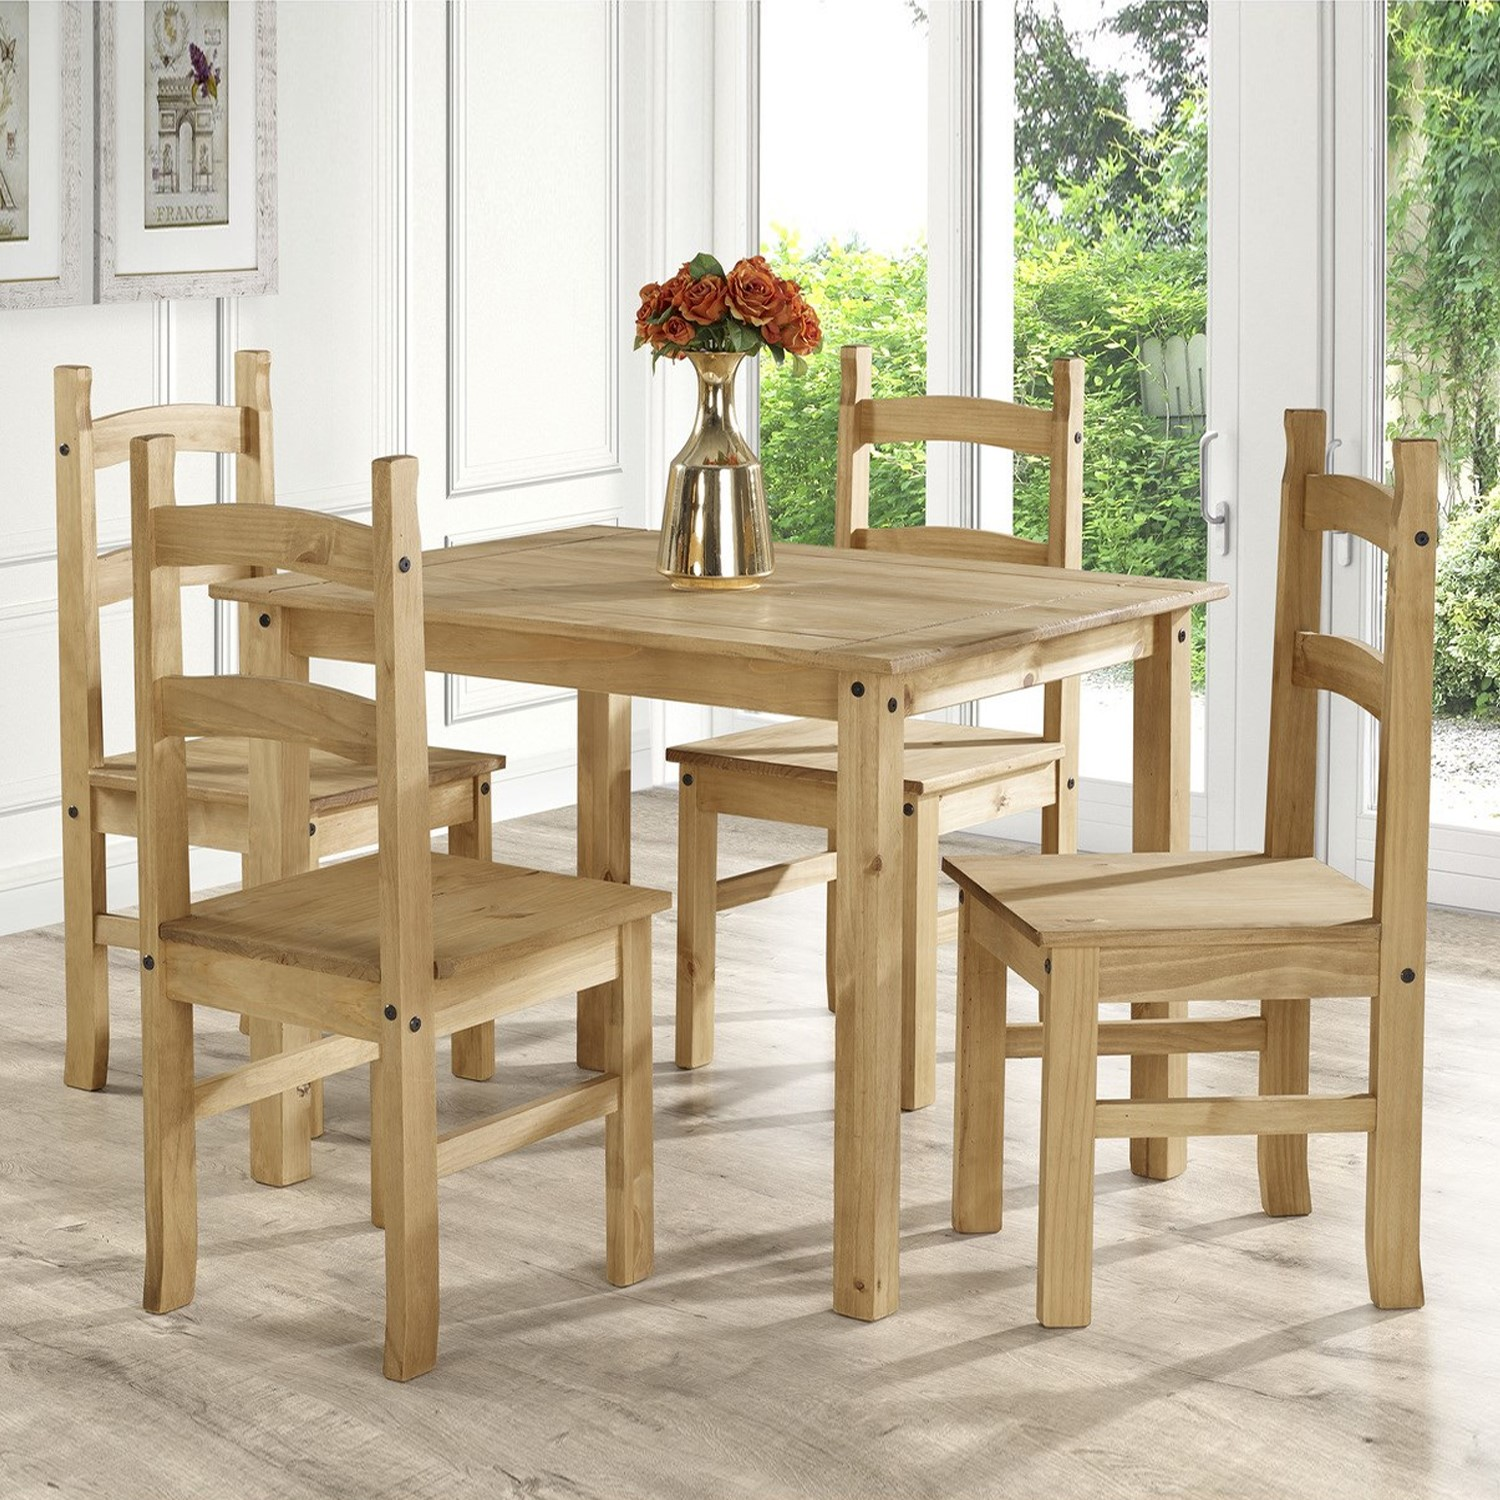 Corona Mexican Solid Pine Dining Set With 4 Dining Chairs